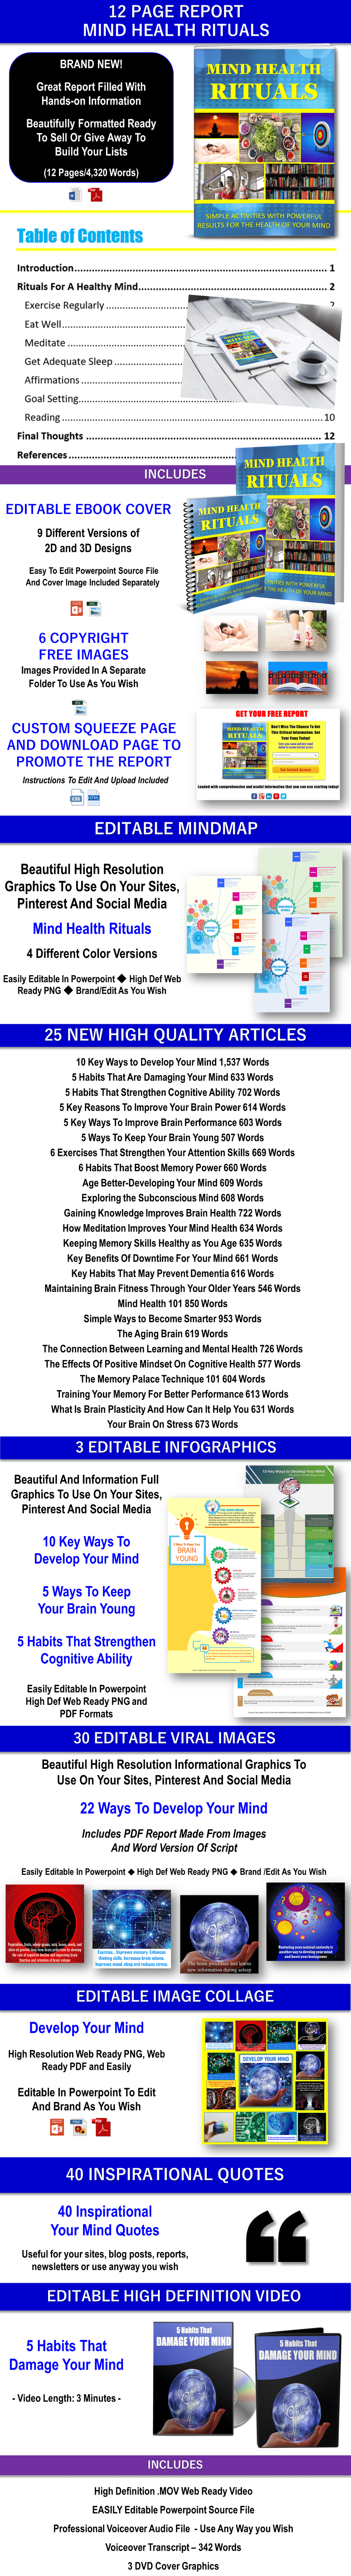 Develop Your Mind Giant Content Pack With PLR Rights